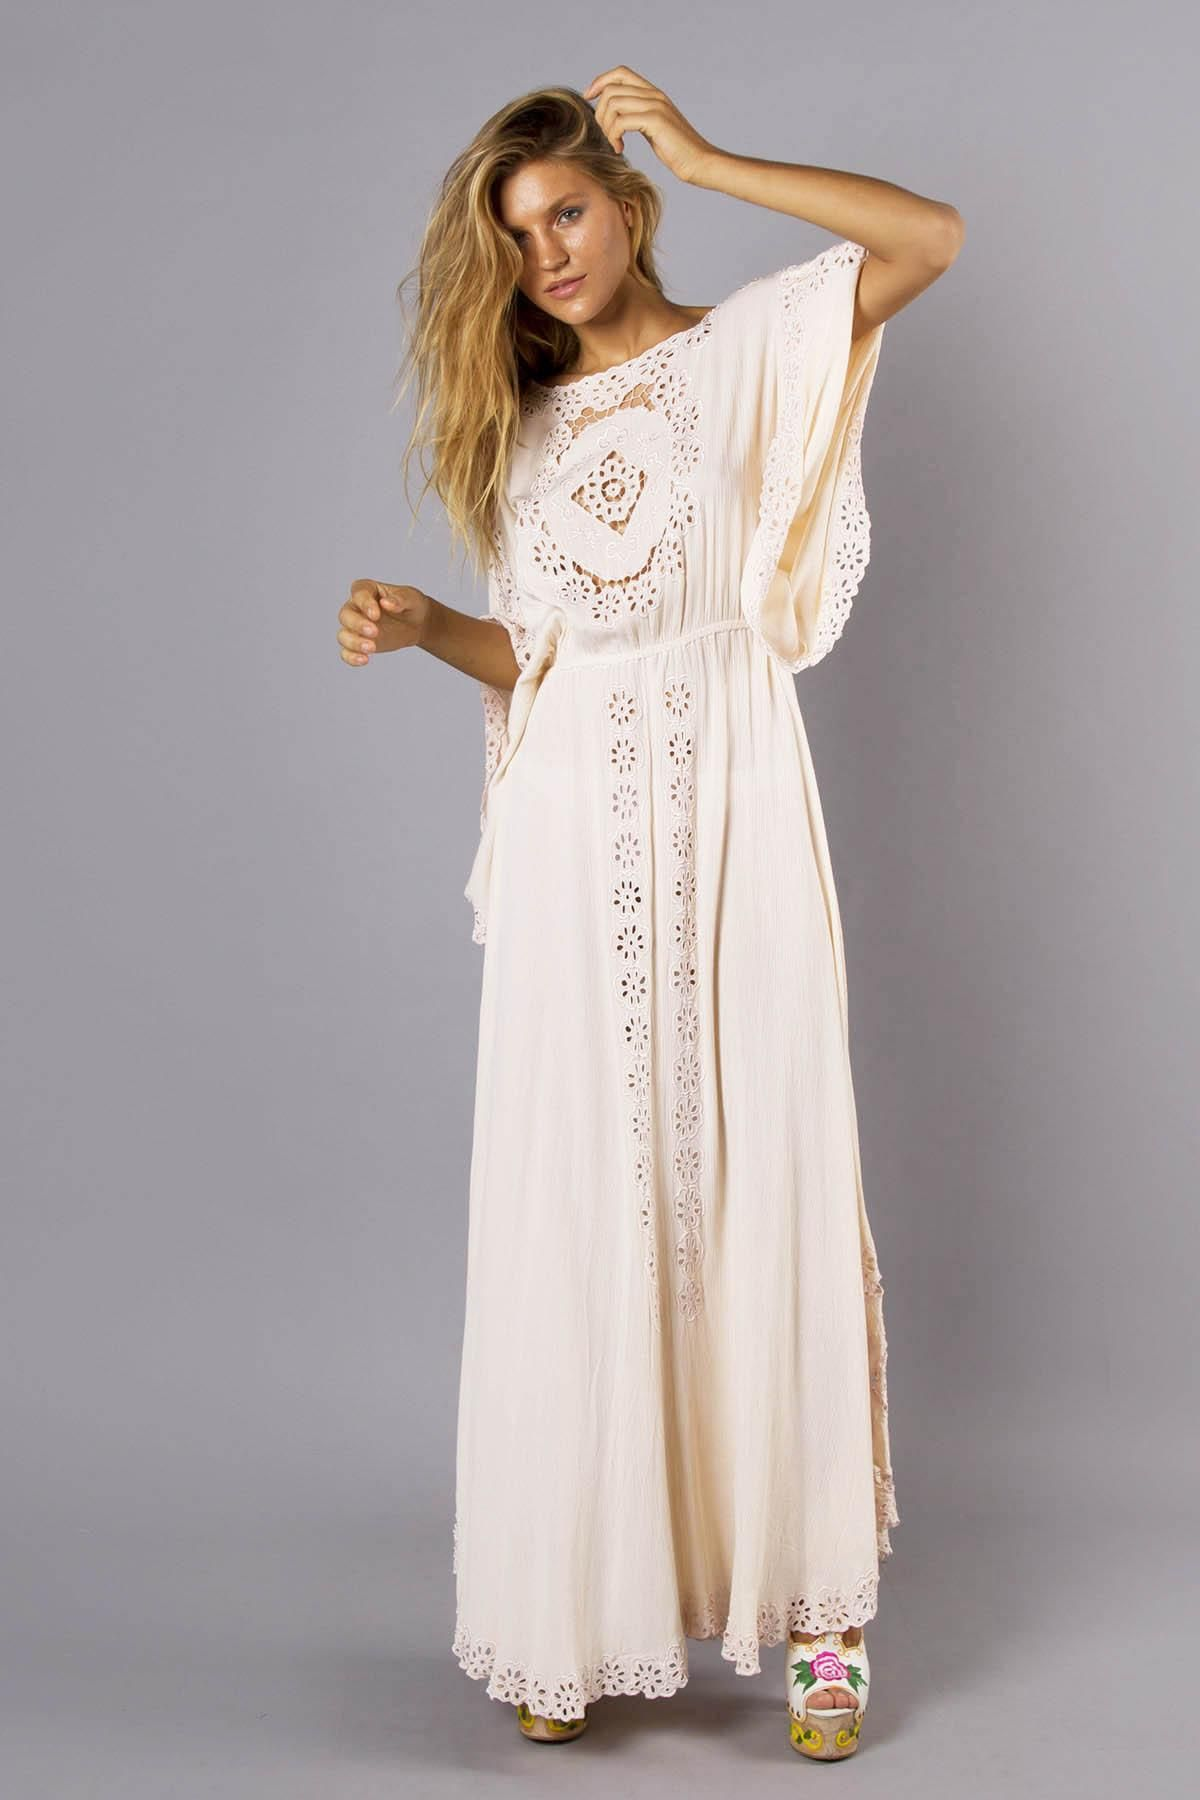 I believe in unicorns maxi dress womens embroidered maxi dress i believe in unicorns maxi dress womens embroidered maxi dress blush fillyboo maternity clothes onlinematernity ombrellifo Choice Image